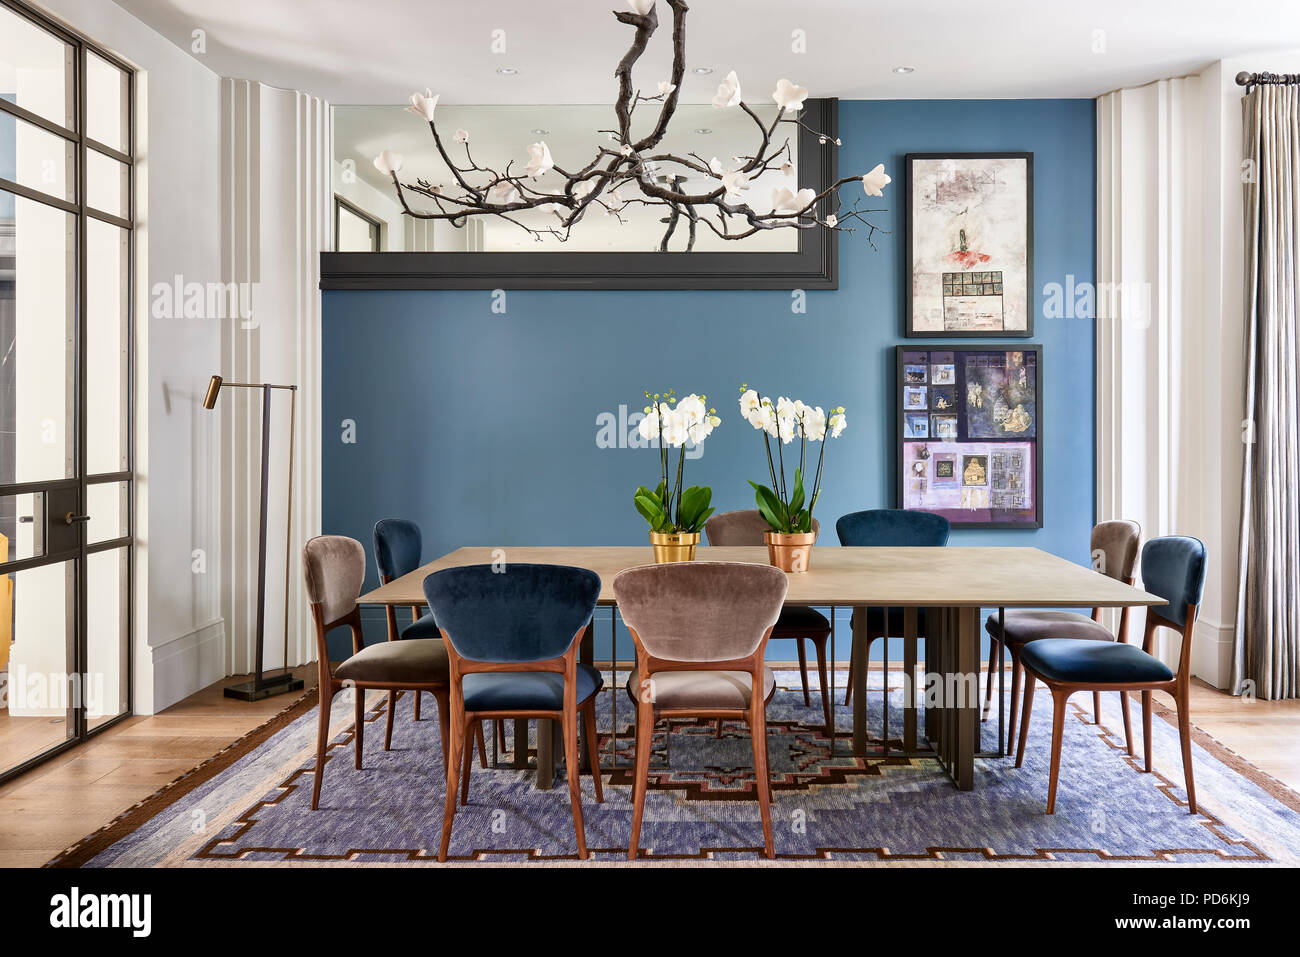 Magnolia Light Fitting Above Dining Table With Orchids And Part Of Mirror Frame Stock Photo Alamy